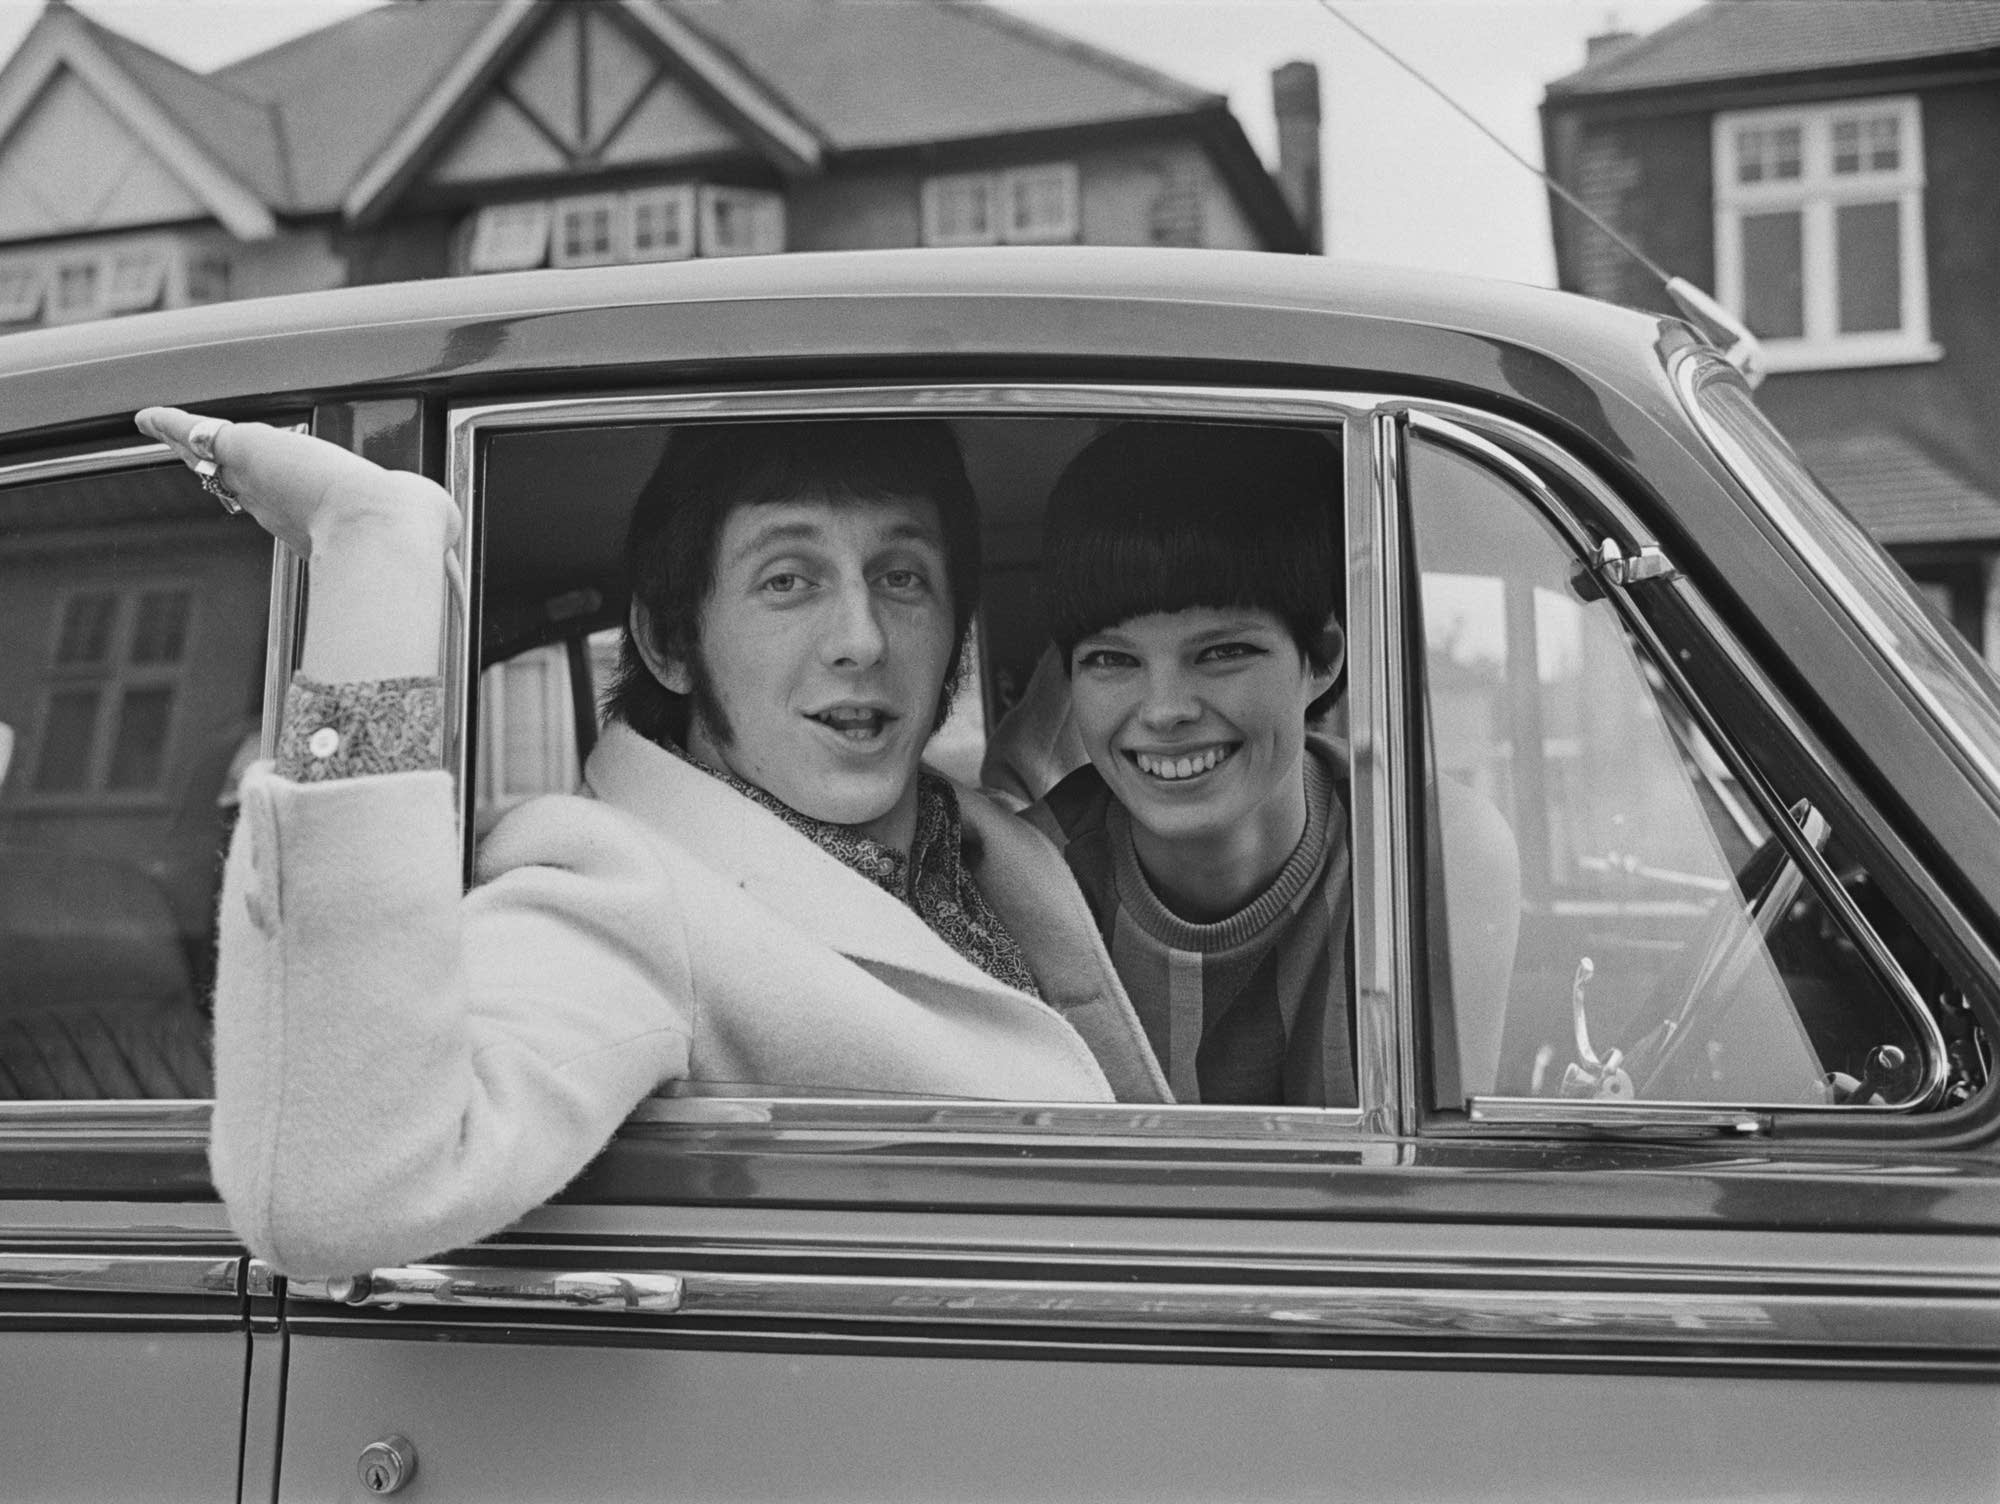 John Entwistle with his first wife, Alison Wise, in 1967.